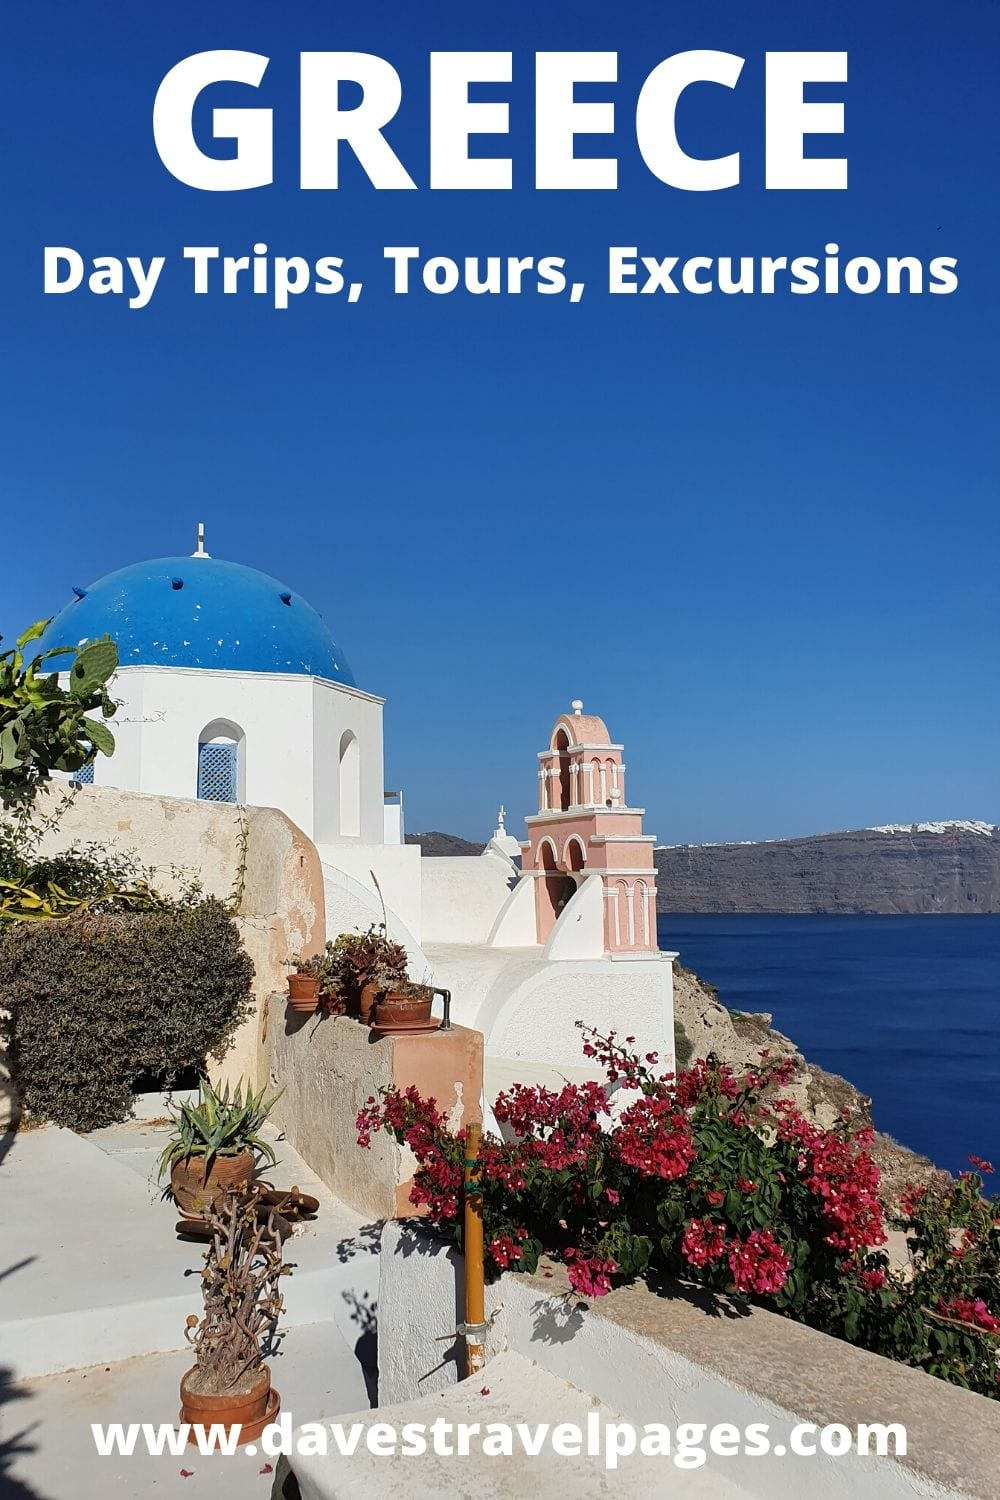 Greece Day Trips, Tours and Excursions